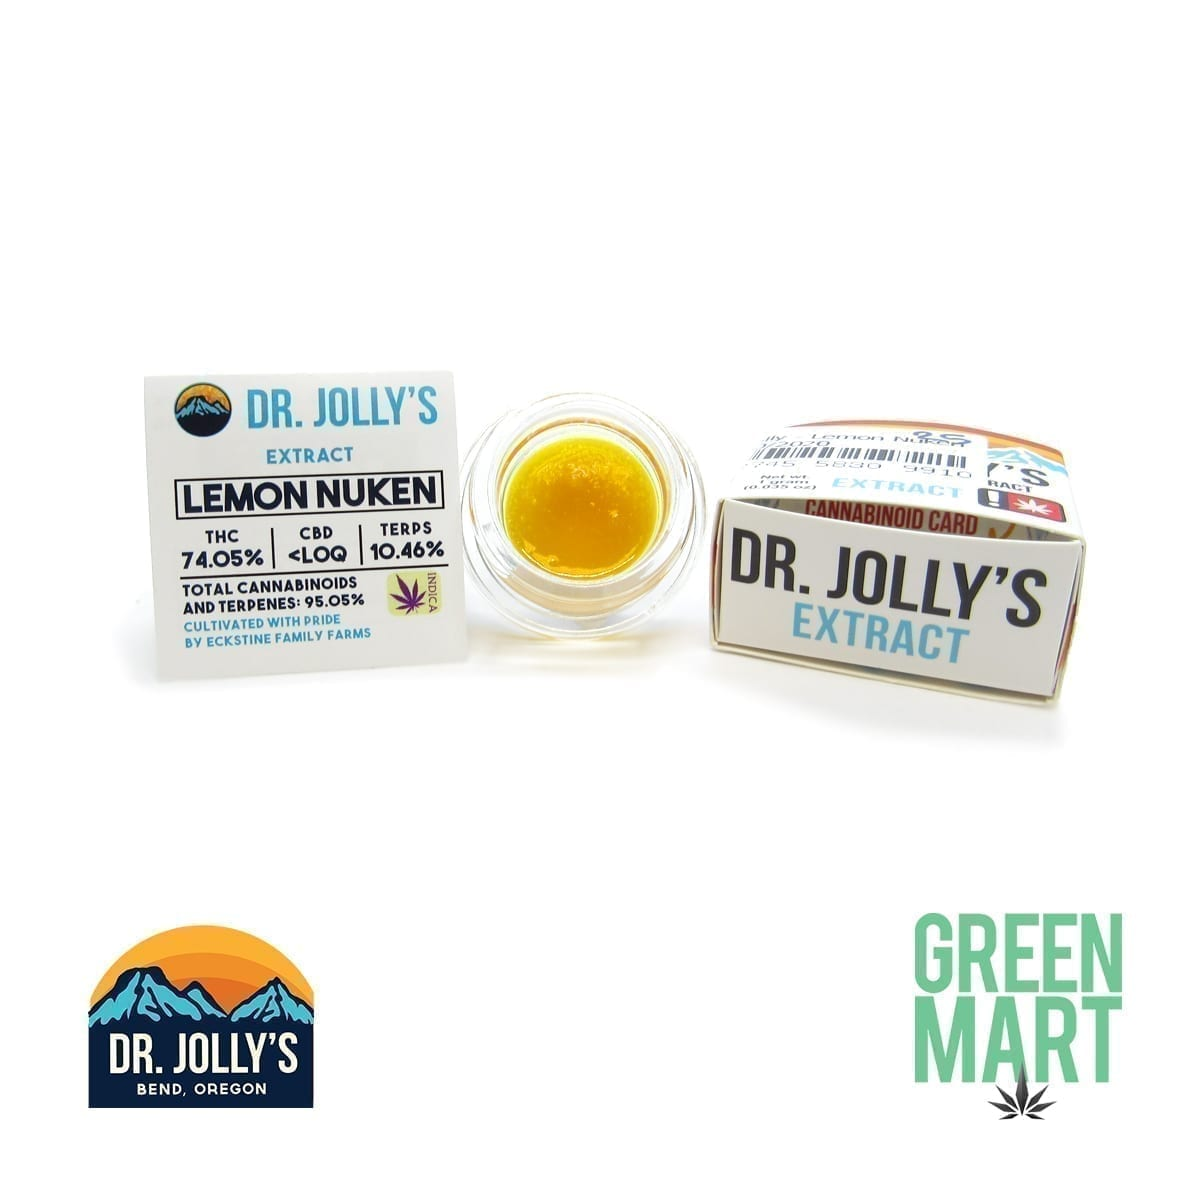 Dr. Jolly's Extracts - Lemon Nuken